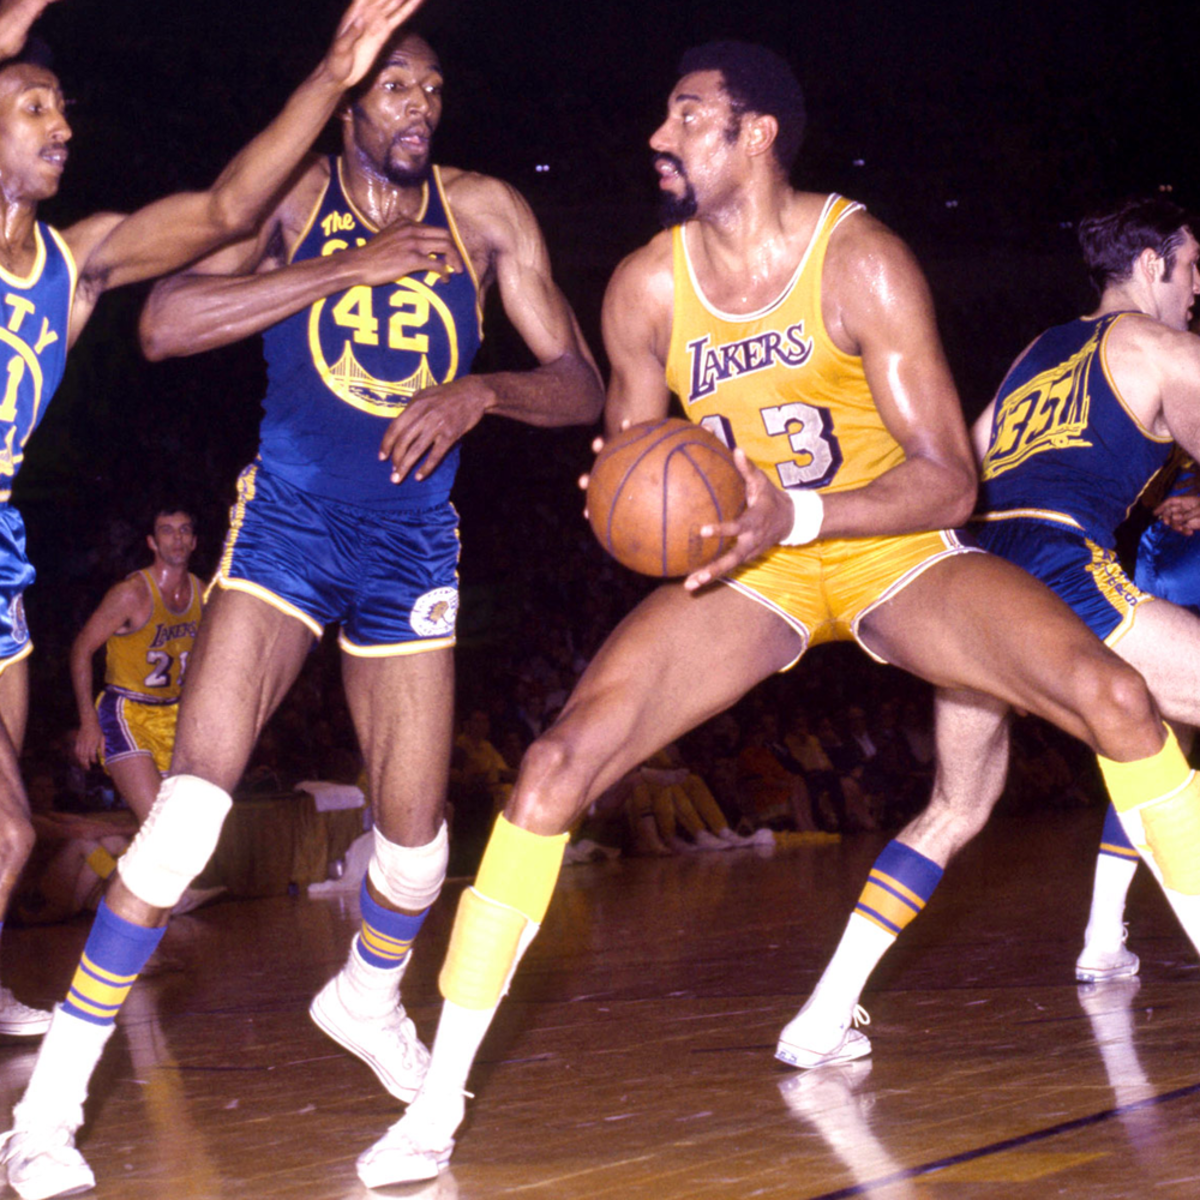 Wilt Chamberlain against multiple defenders.